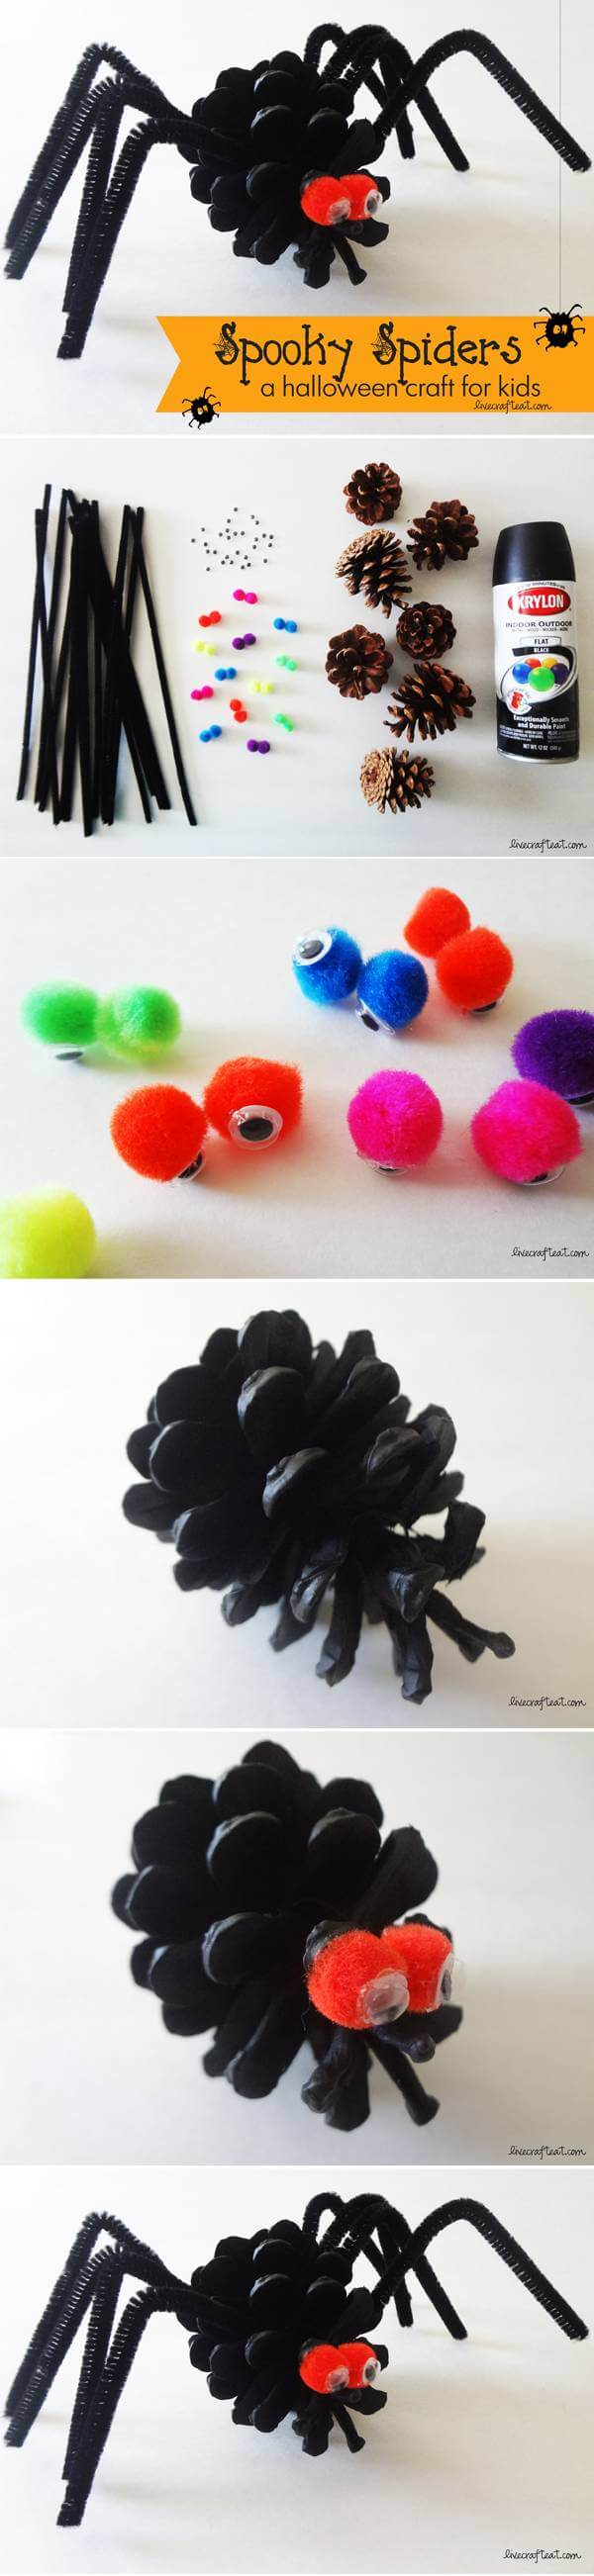 Pine Cone and Pipe Cleaner Spiders | Fun & Creative DIY Halloween Crafts for Kids